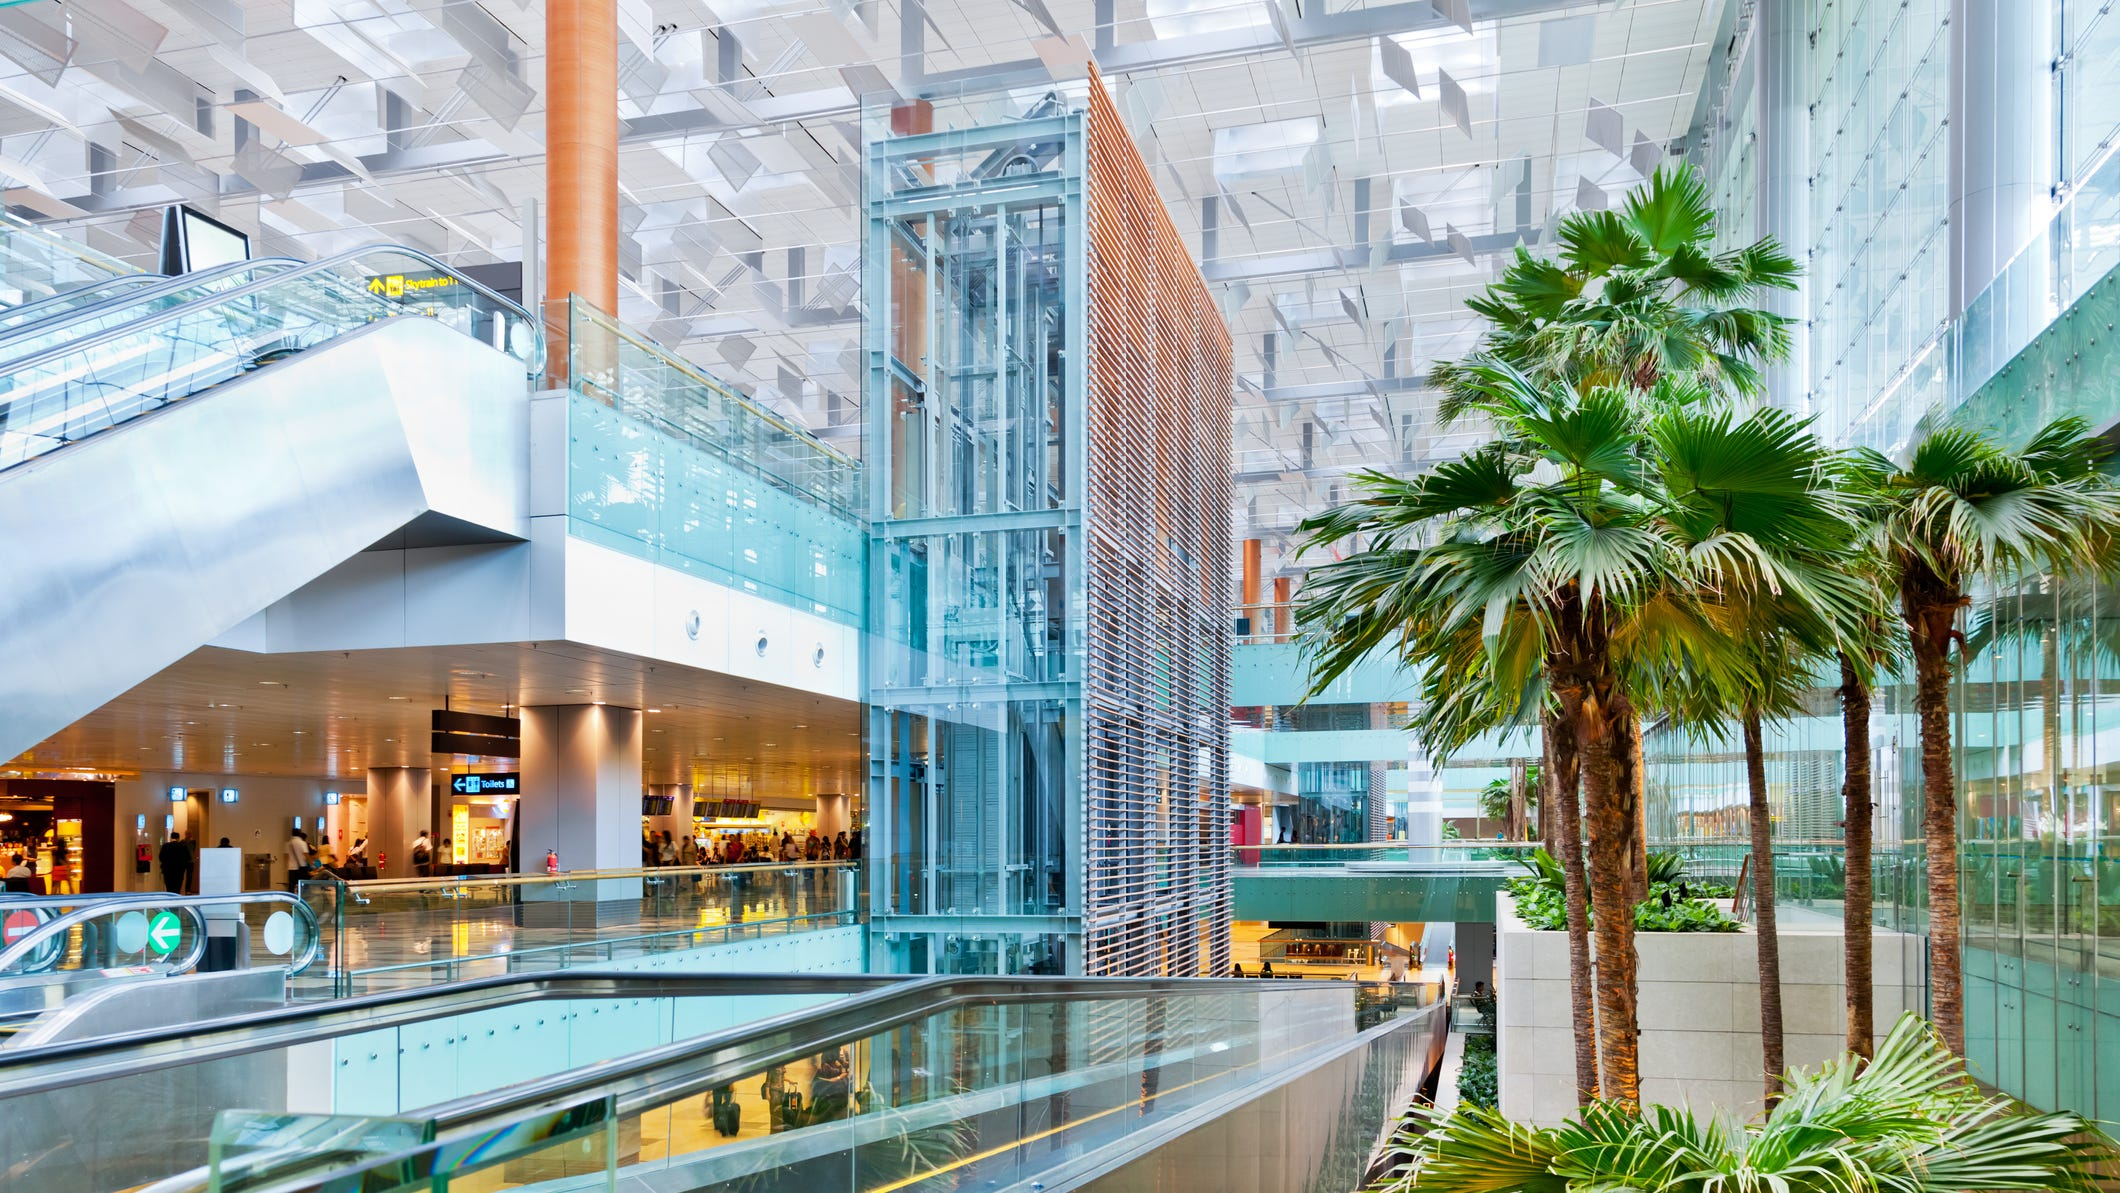 Singapore's Changi Airport, shown here, has been named the world's best for the seventh year in a row in the World Airport Awards by Skytrax. Scroll through this gallery to get a look at the top 25 airports for 2019.